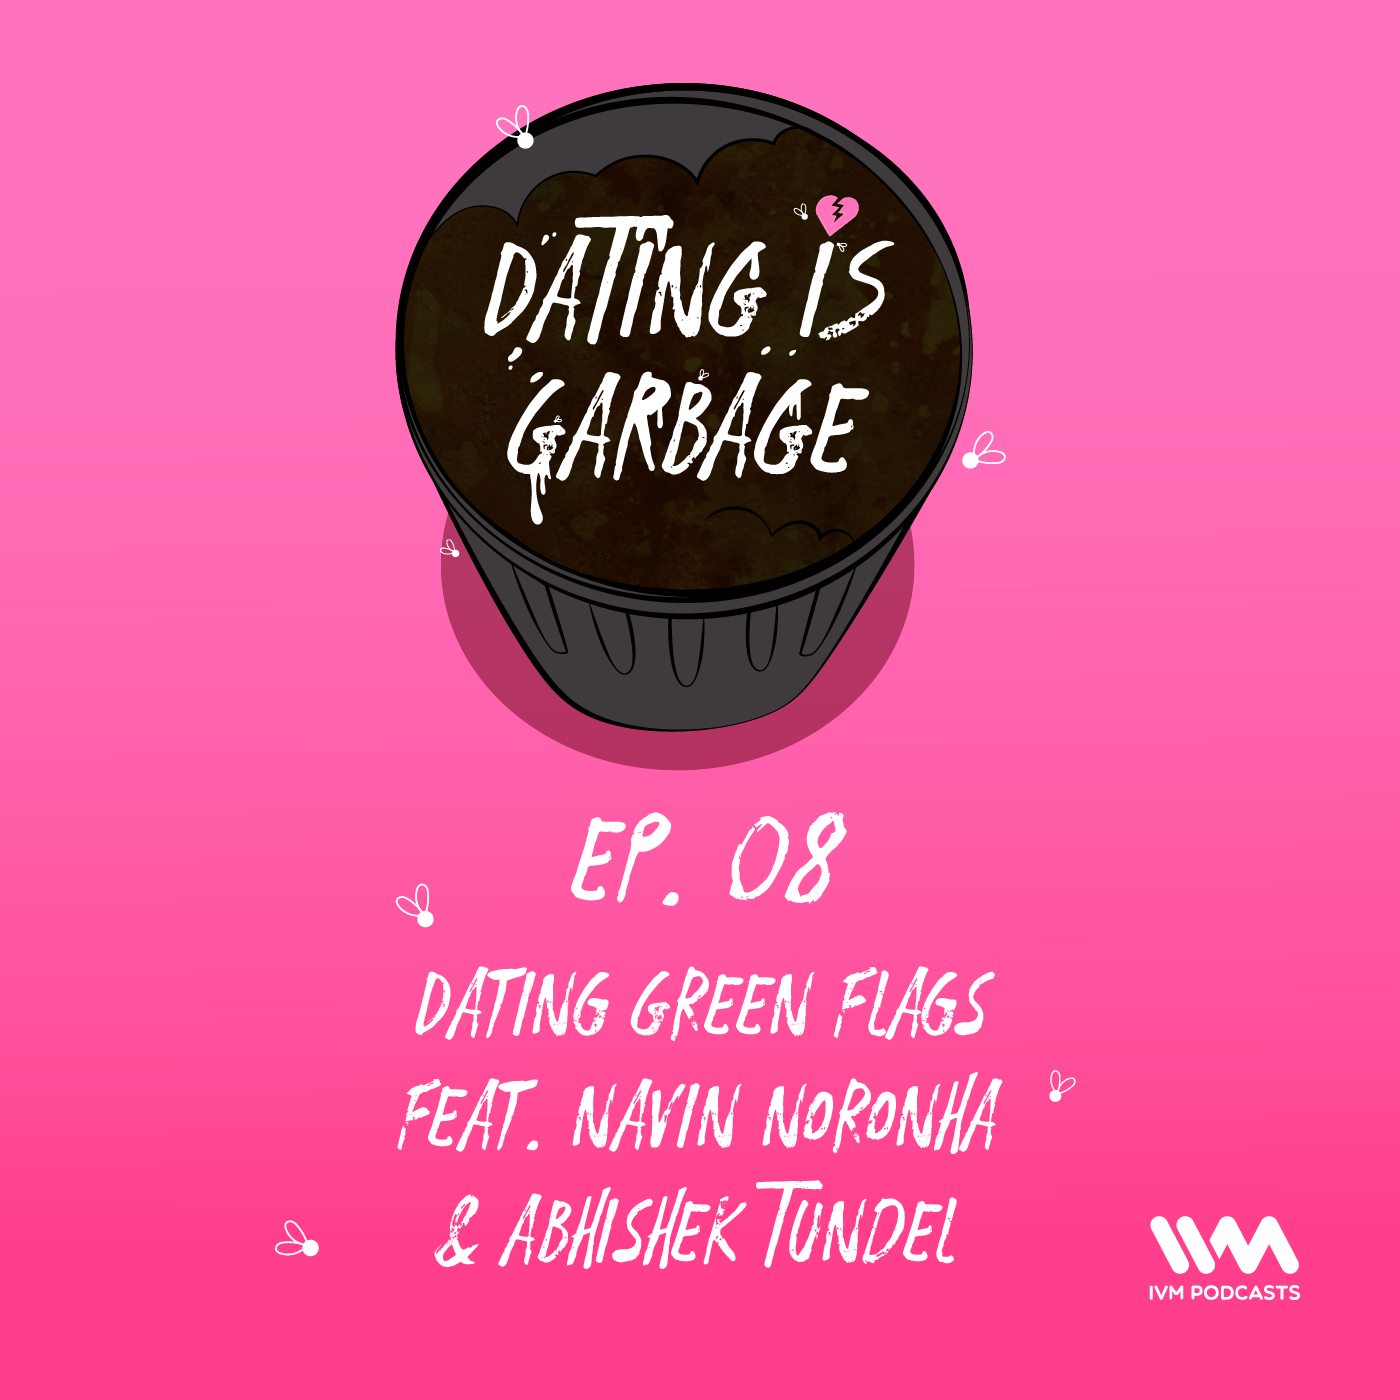 Ep. 08: Dating Green Flags